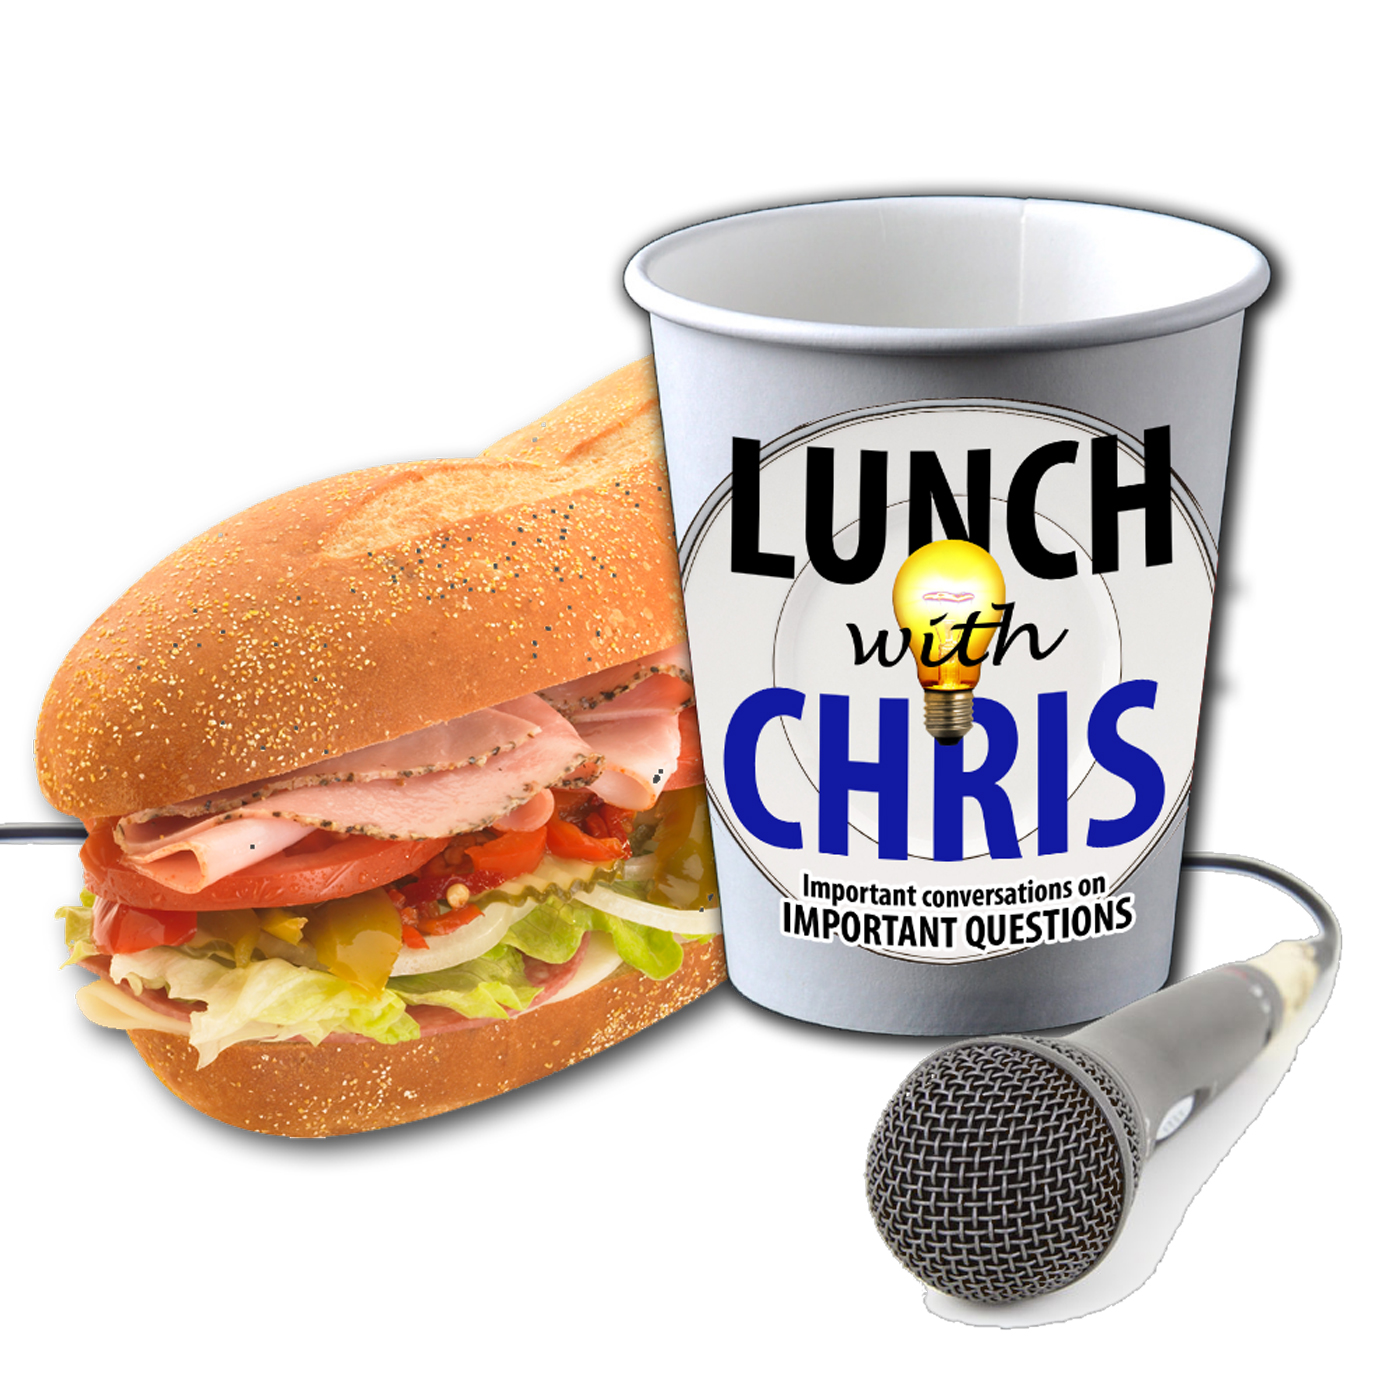 Join me for lunch